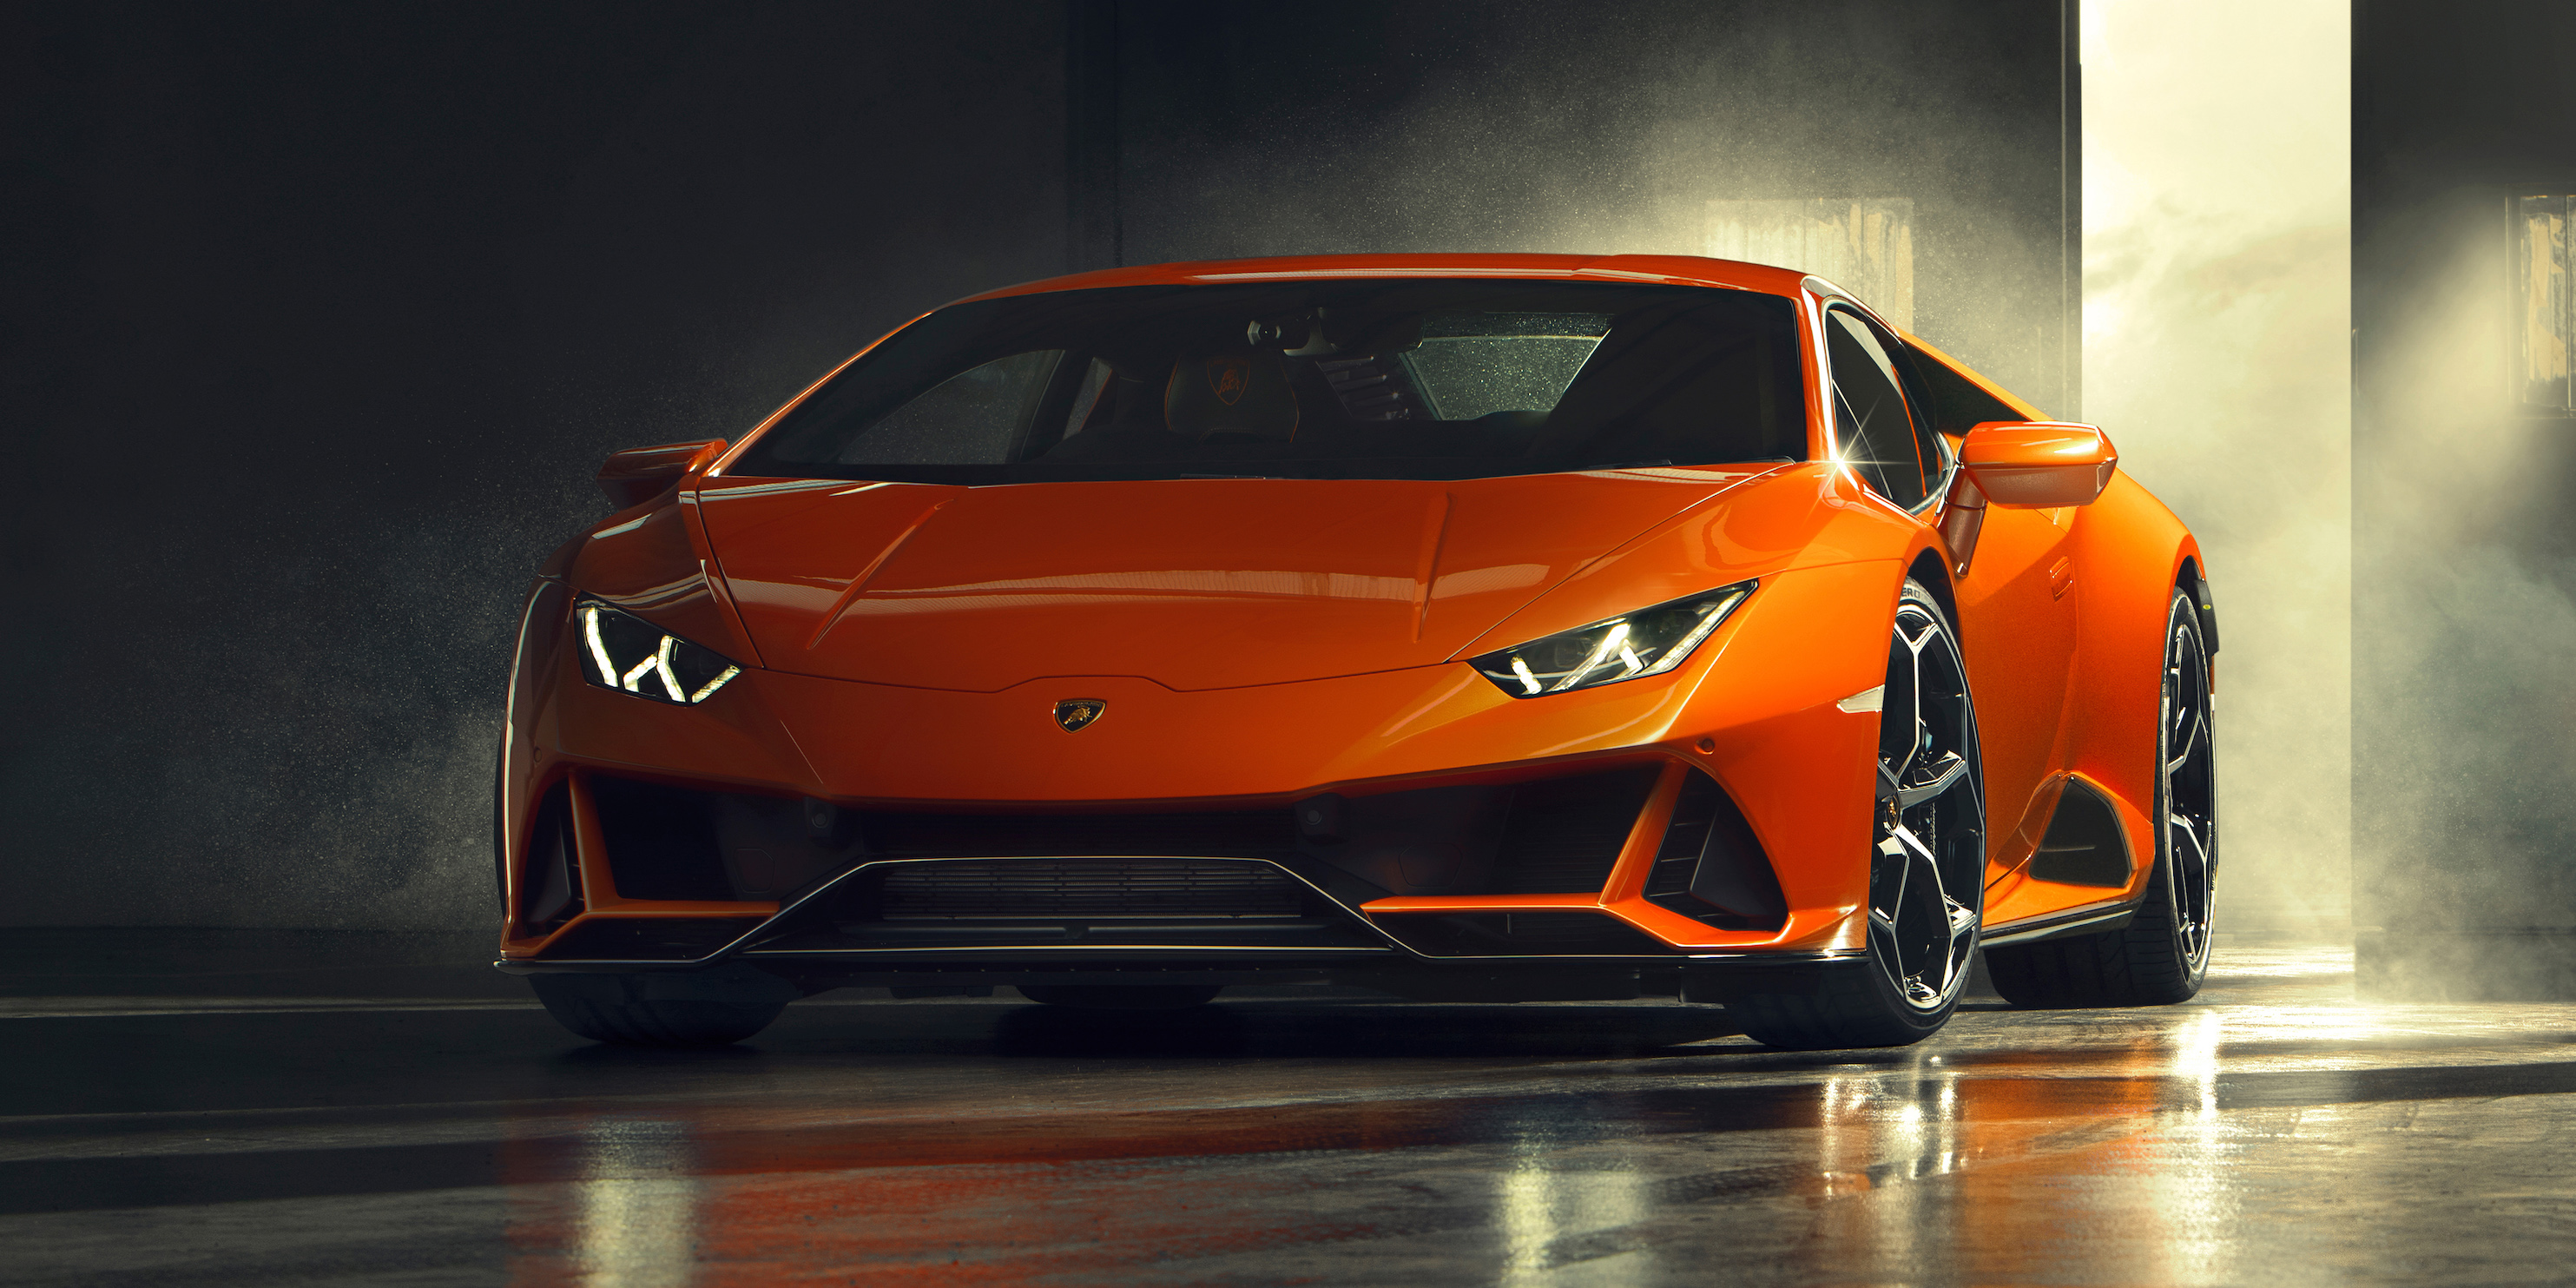 The New Lamborghini Huracan Evo Is A Kinder Performante Torque